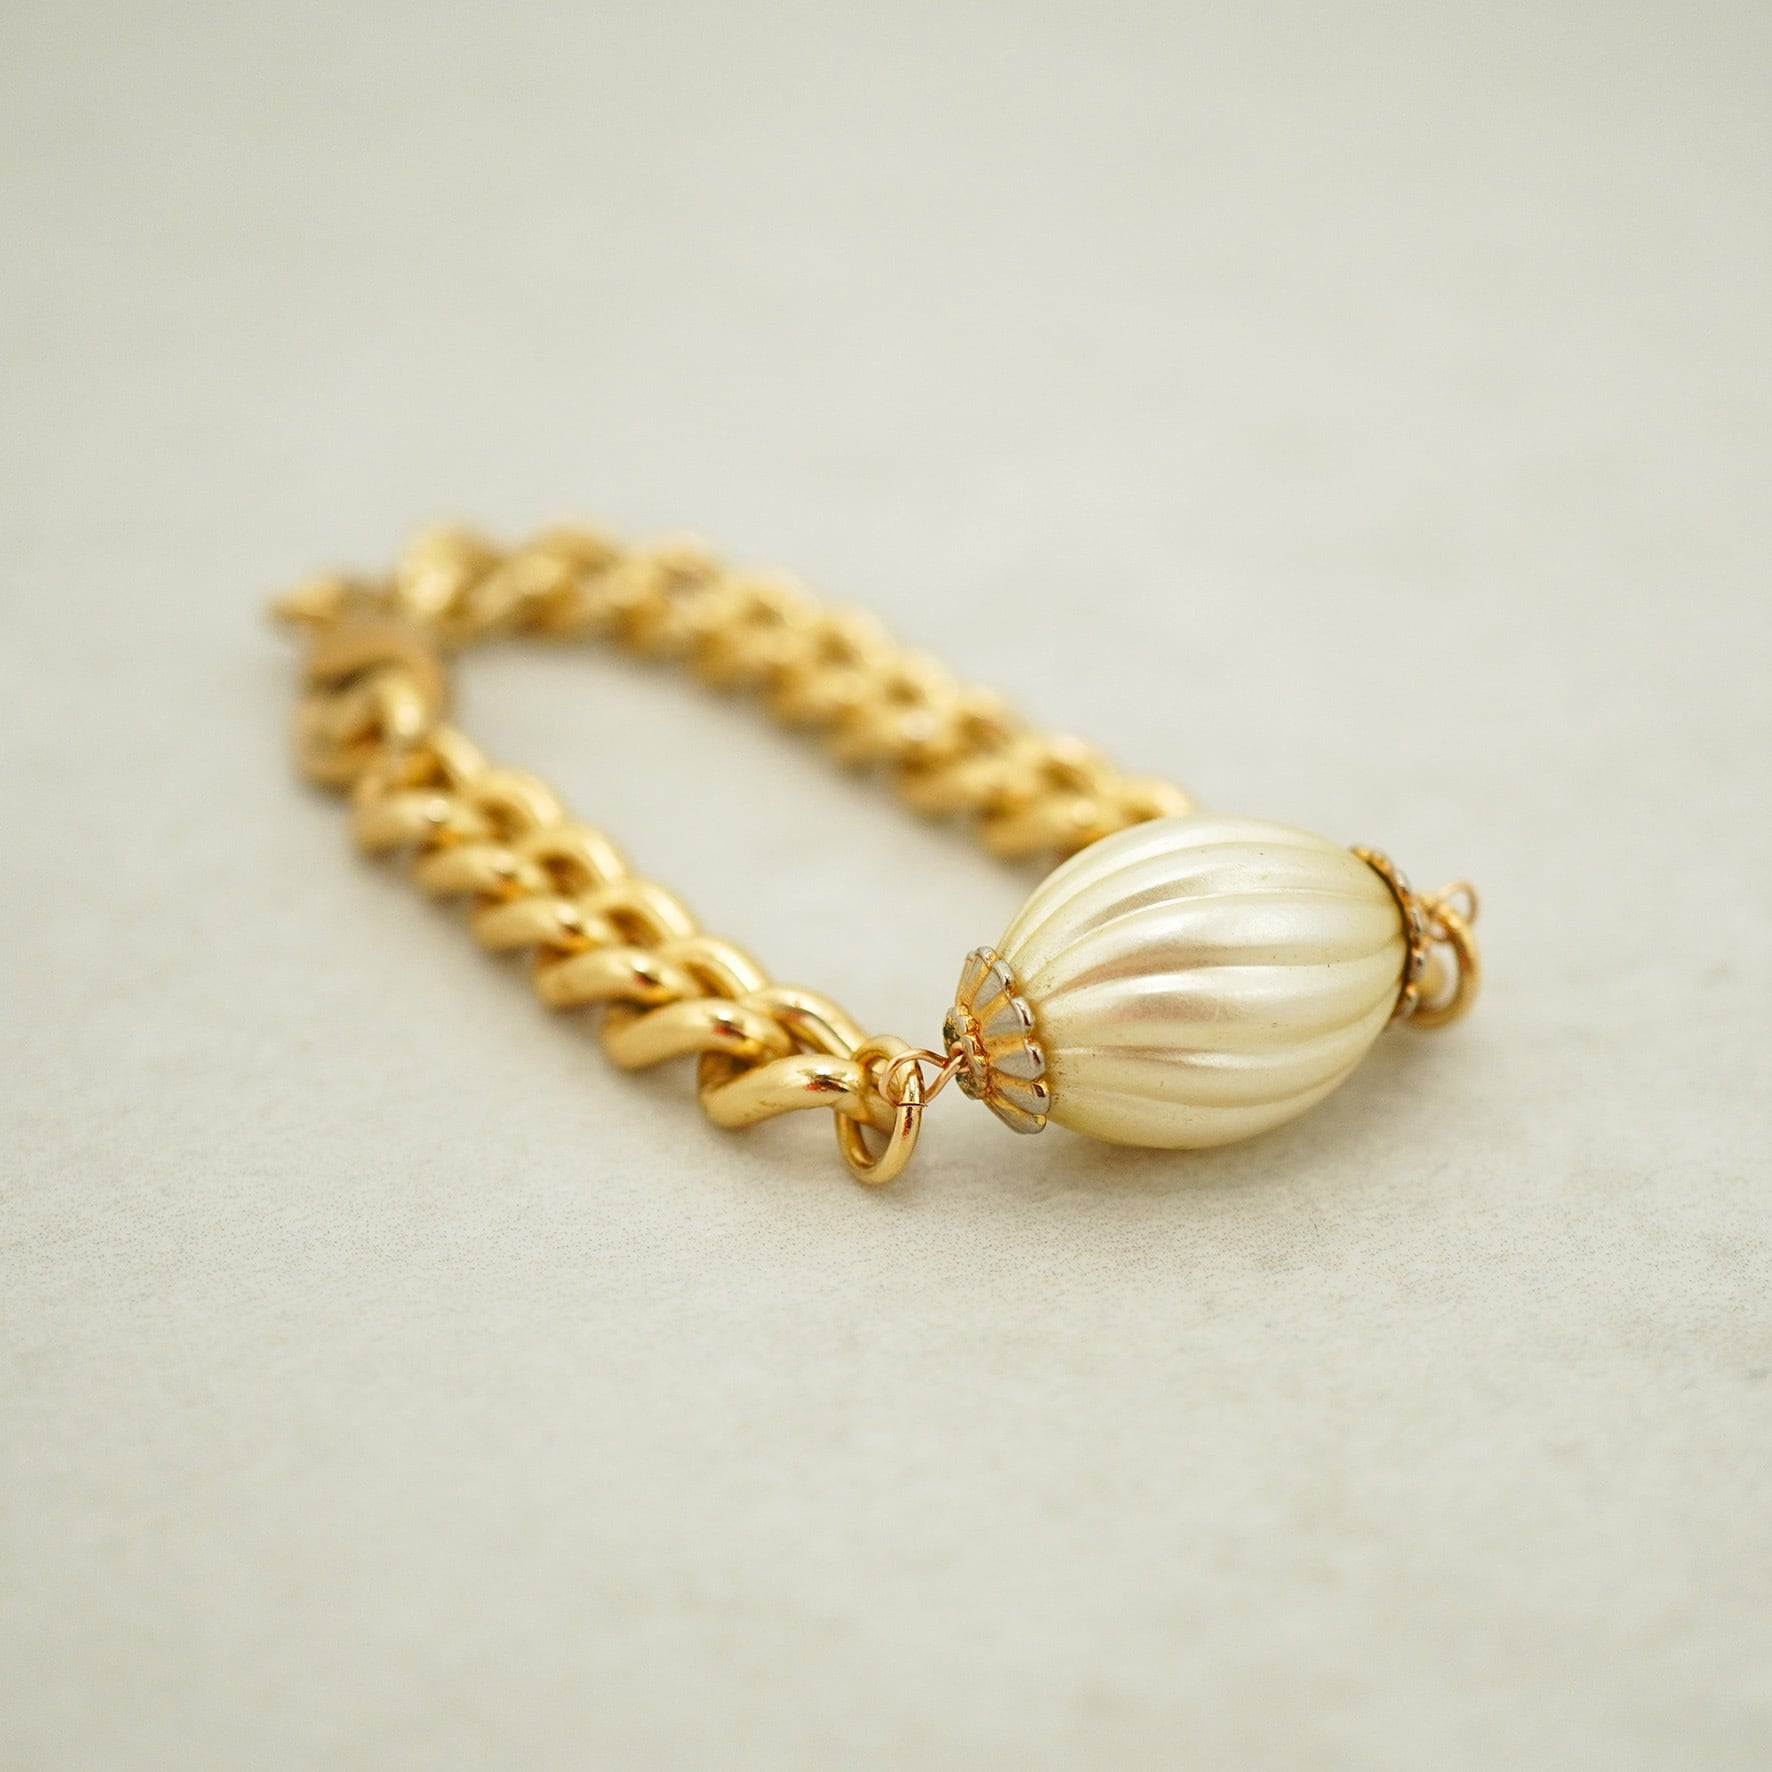 【FRENCH ANTIQUE】SHELL PEARL BRACELET